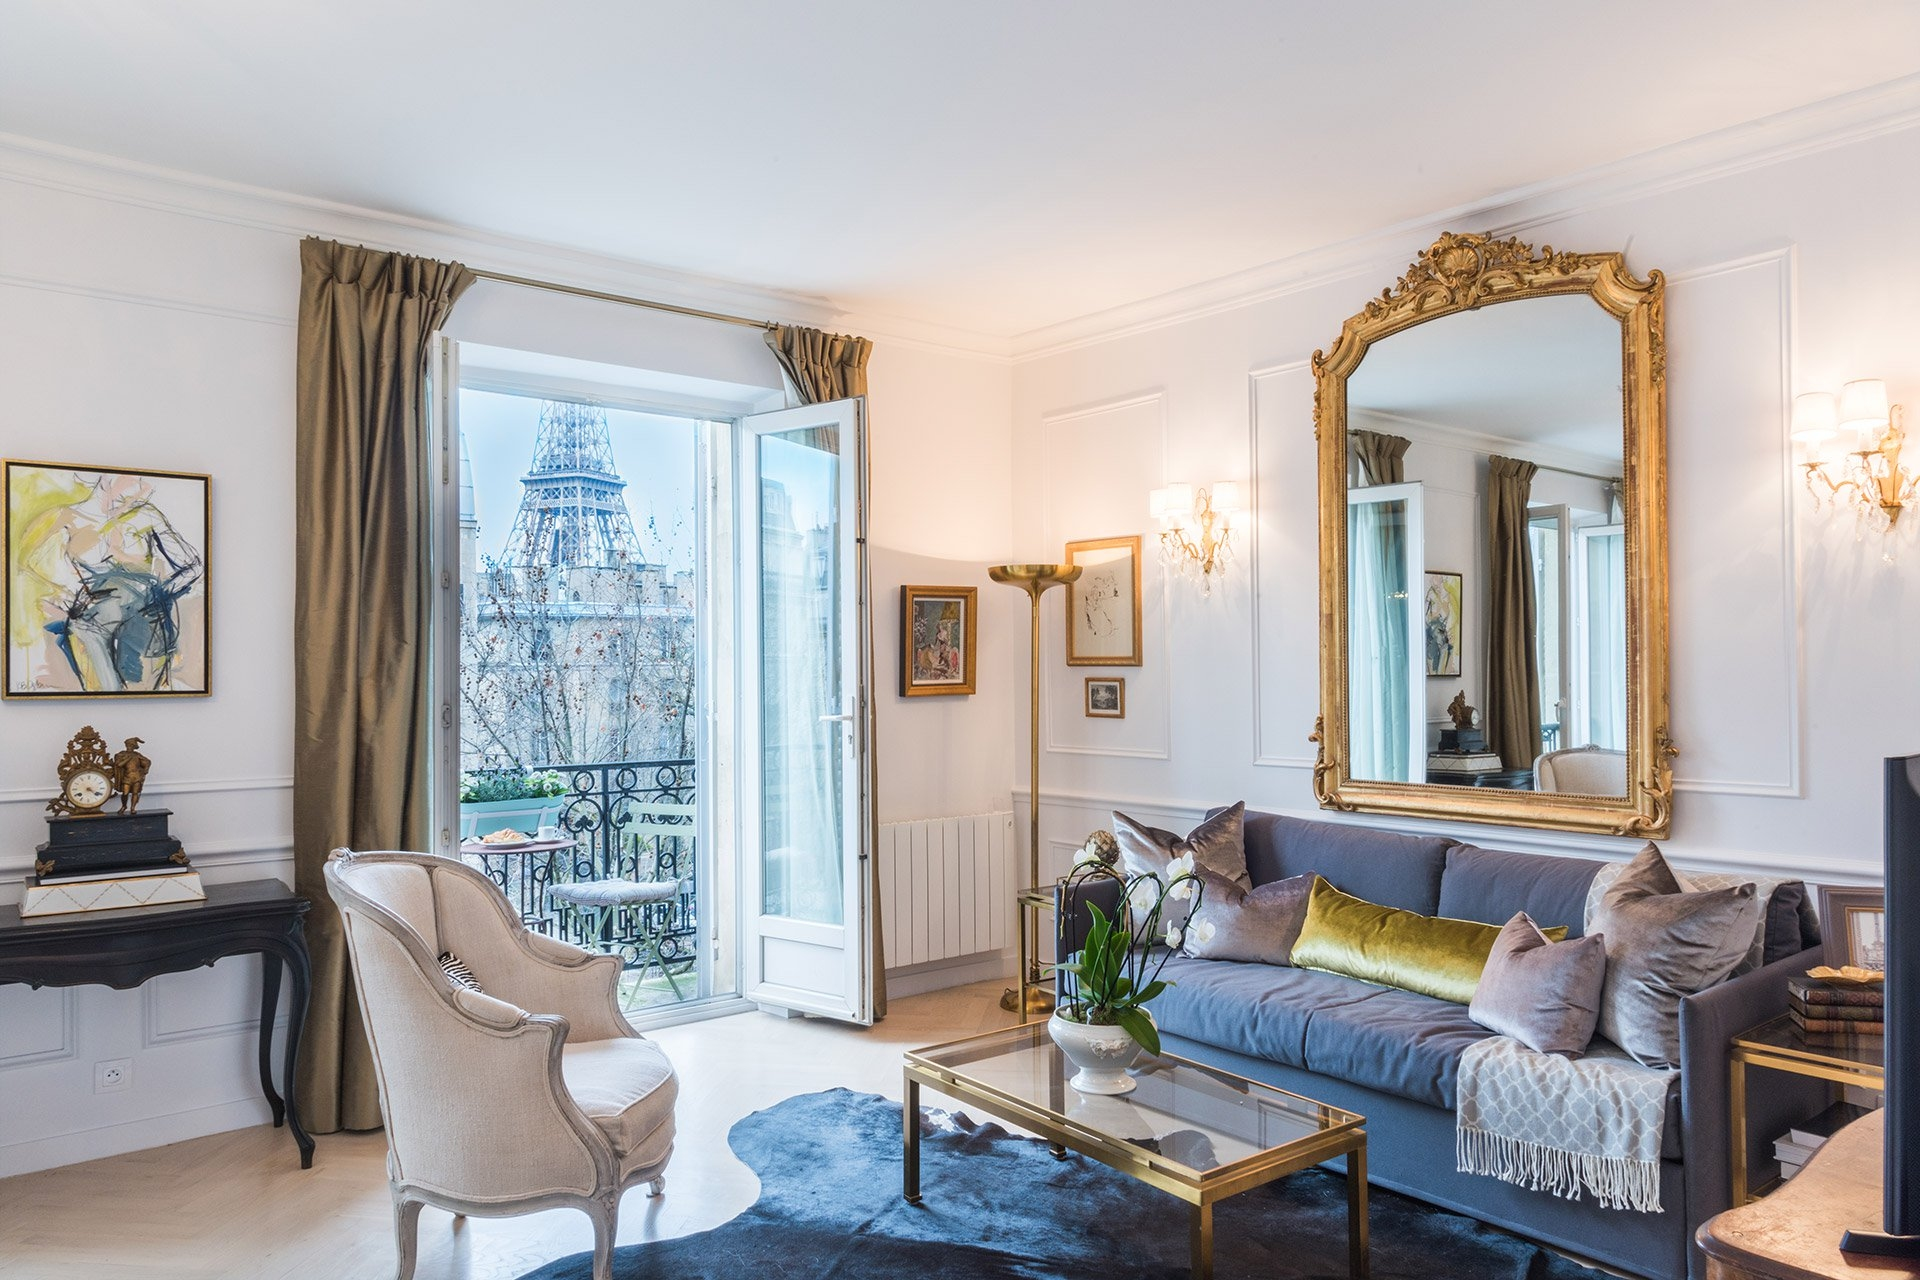 Announcing a Fabulous New Paris Pied-à-Terre Ownership Opportunity!